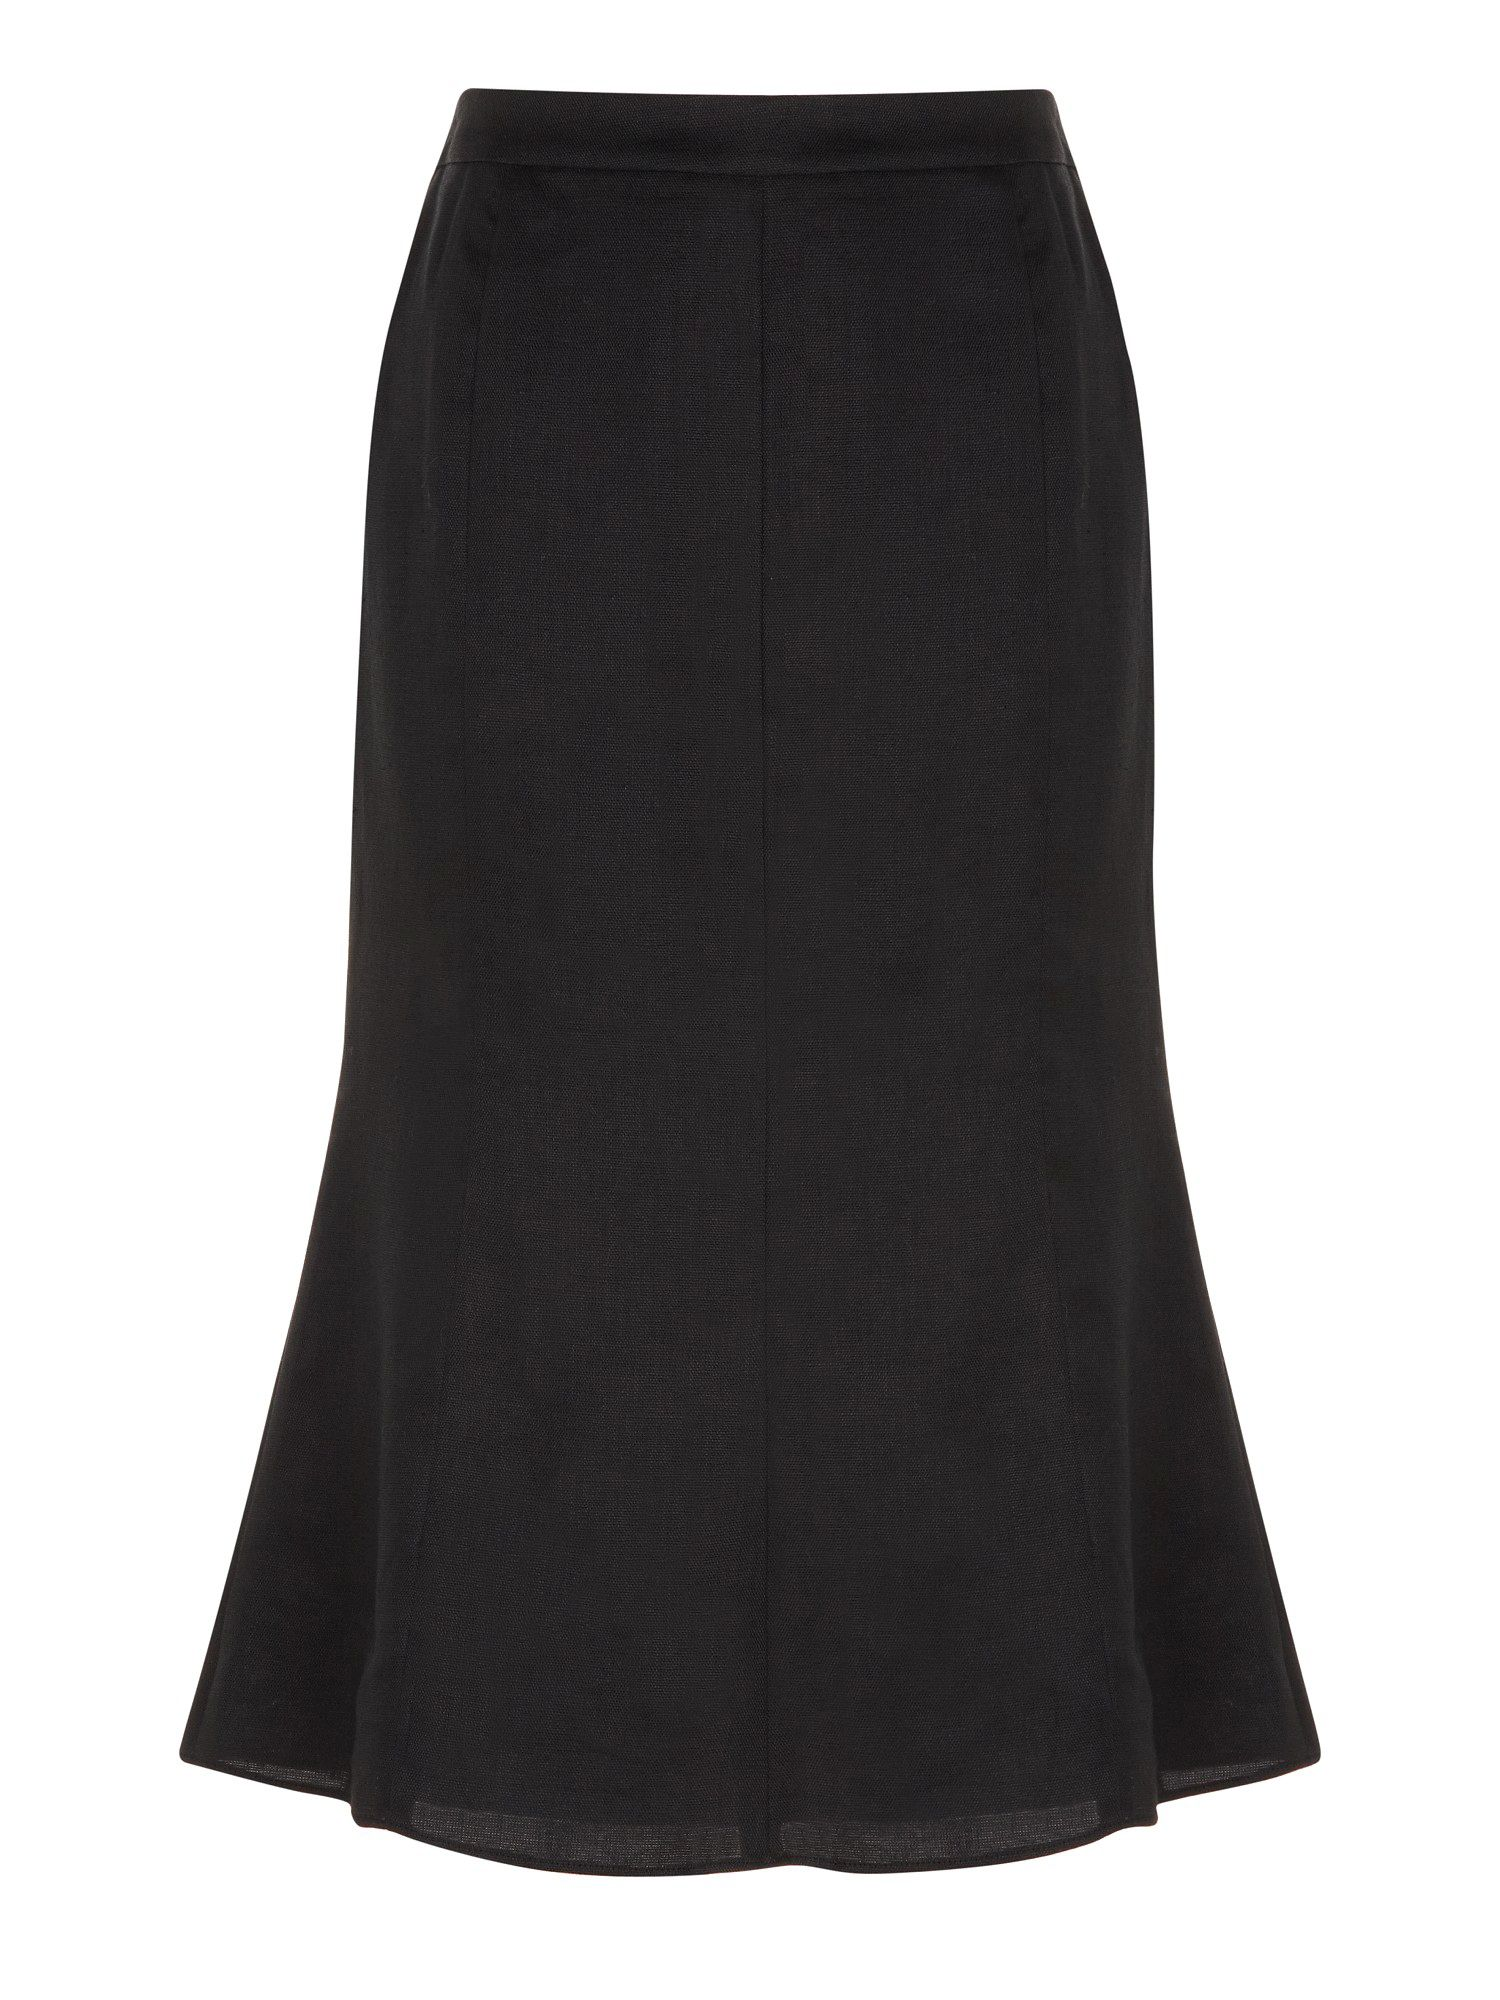 Black textured linen skirt